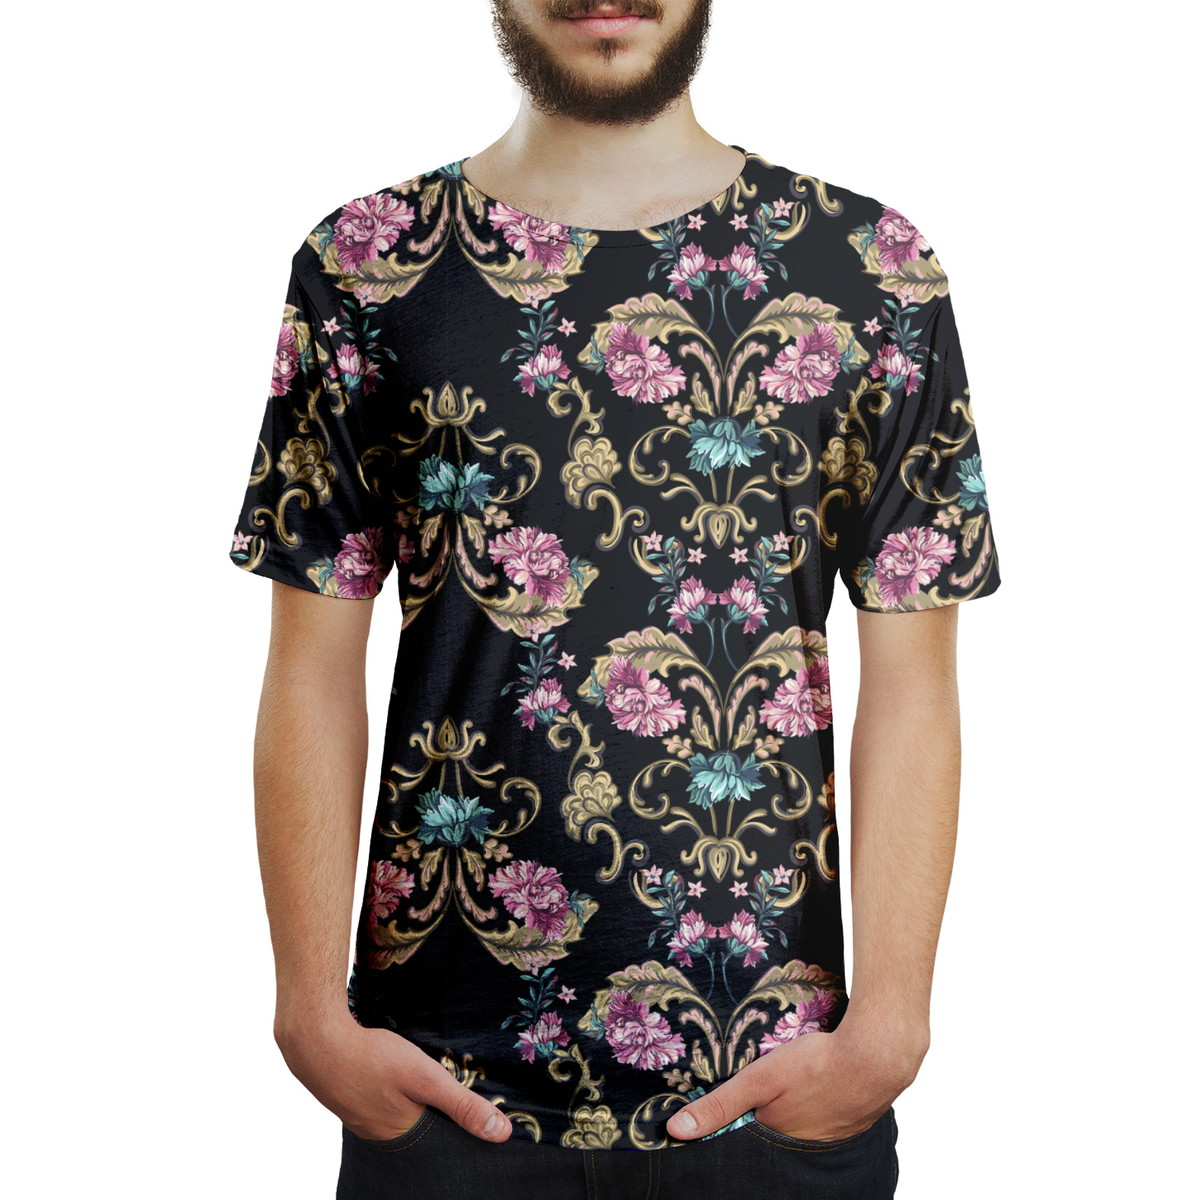 455971b1e Camiseta Masculina Floral Barroco Estampa Digital no Elo7